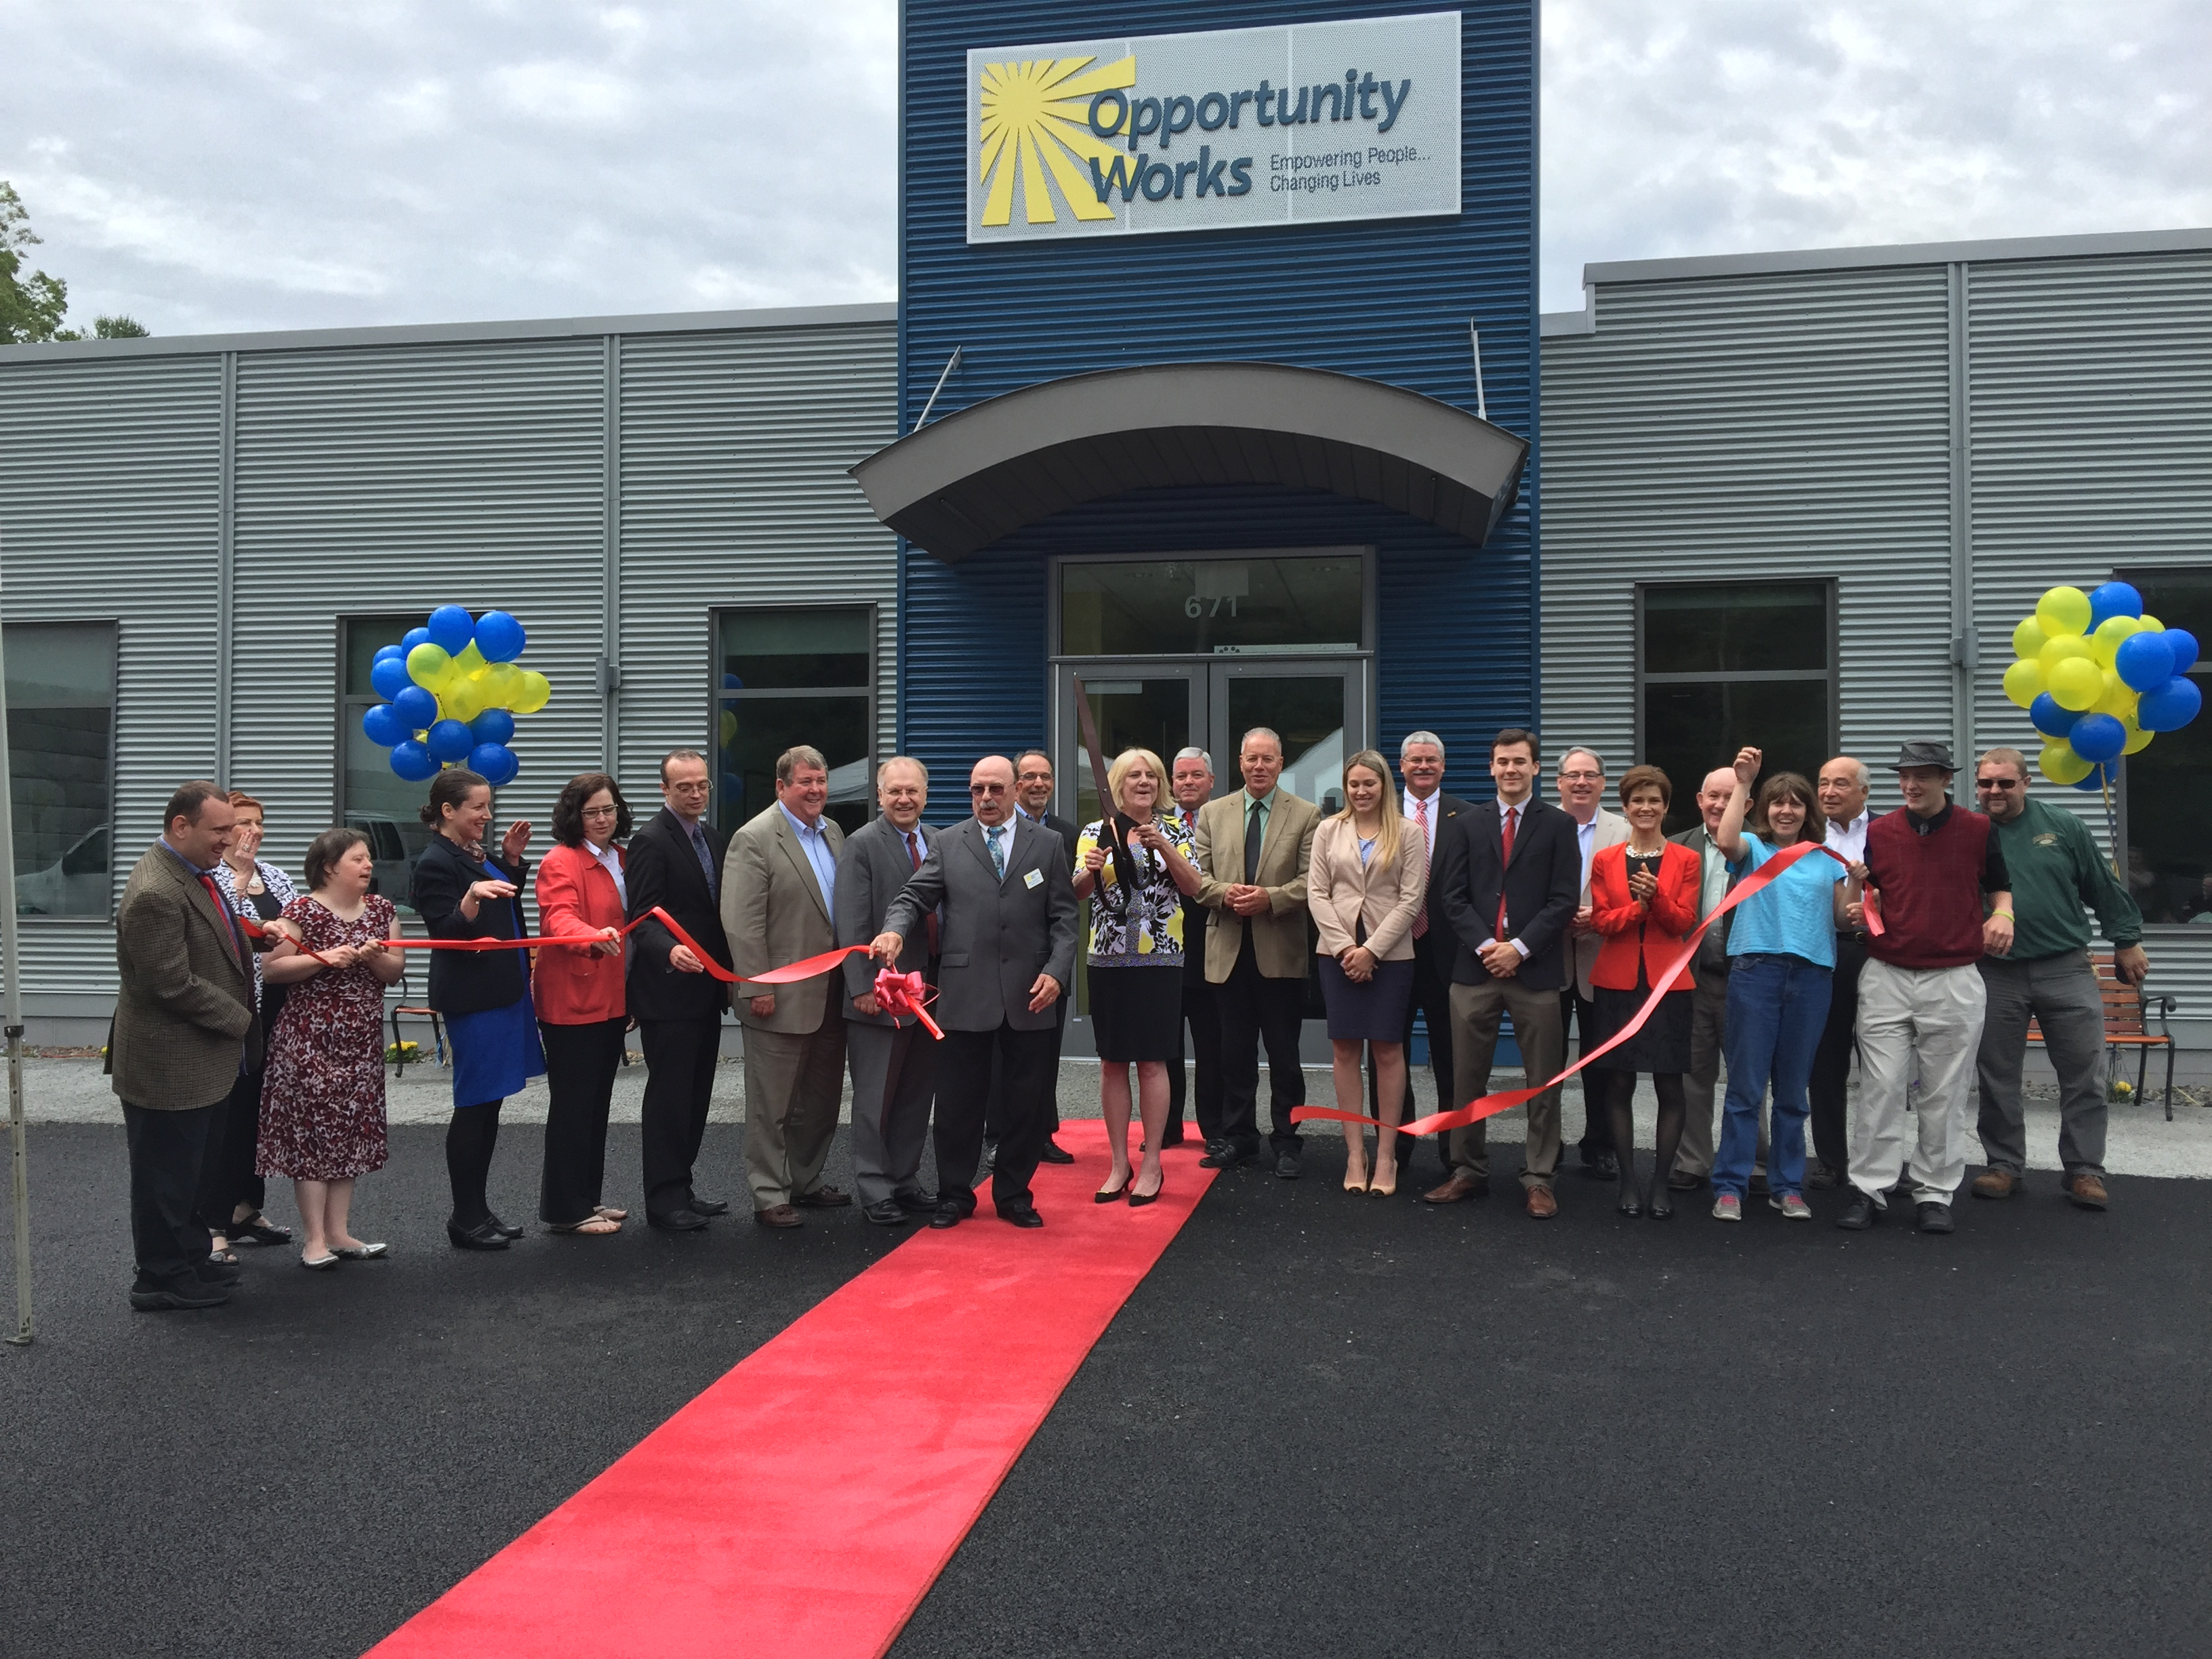 OPPORTUNITY WORKS OPENS STATE-OF-THE-ART FACILITY IN HAVERHILL